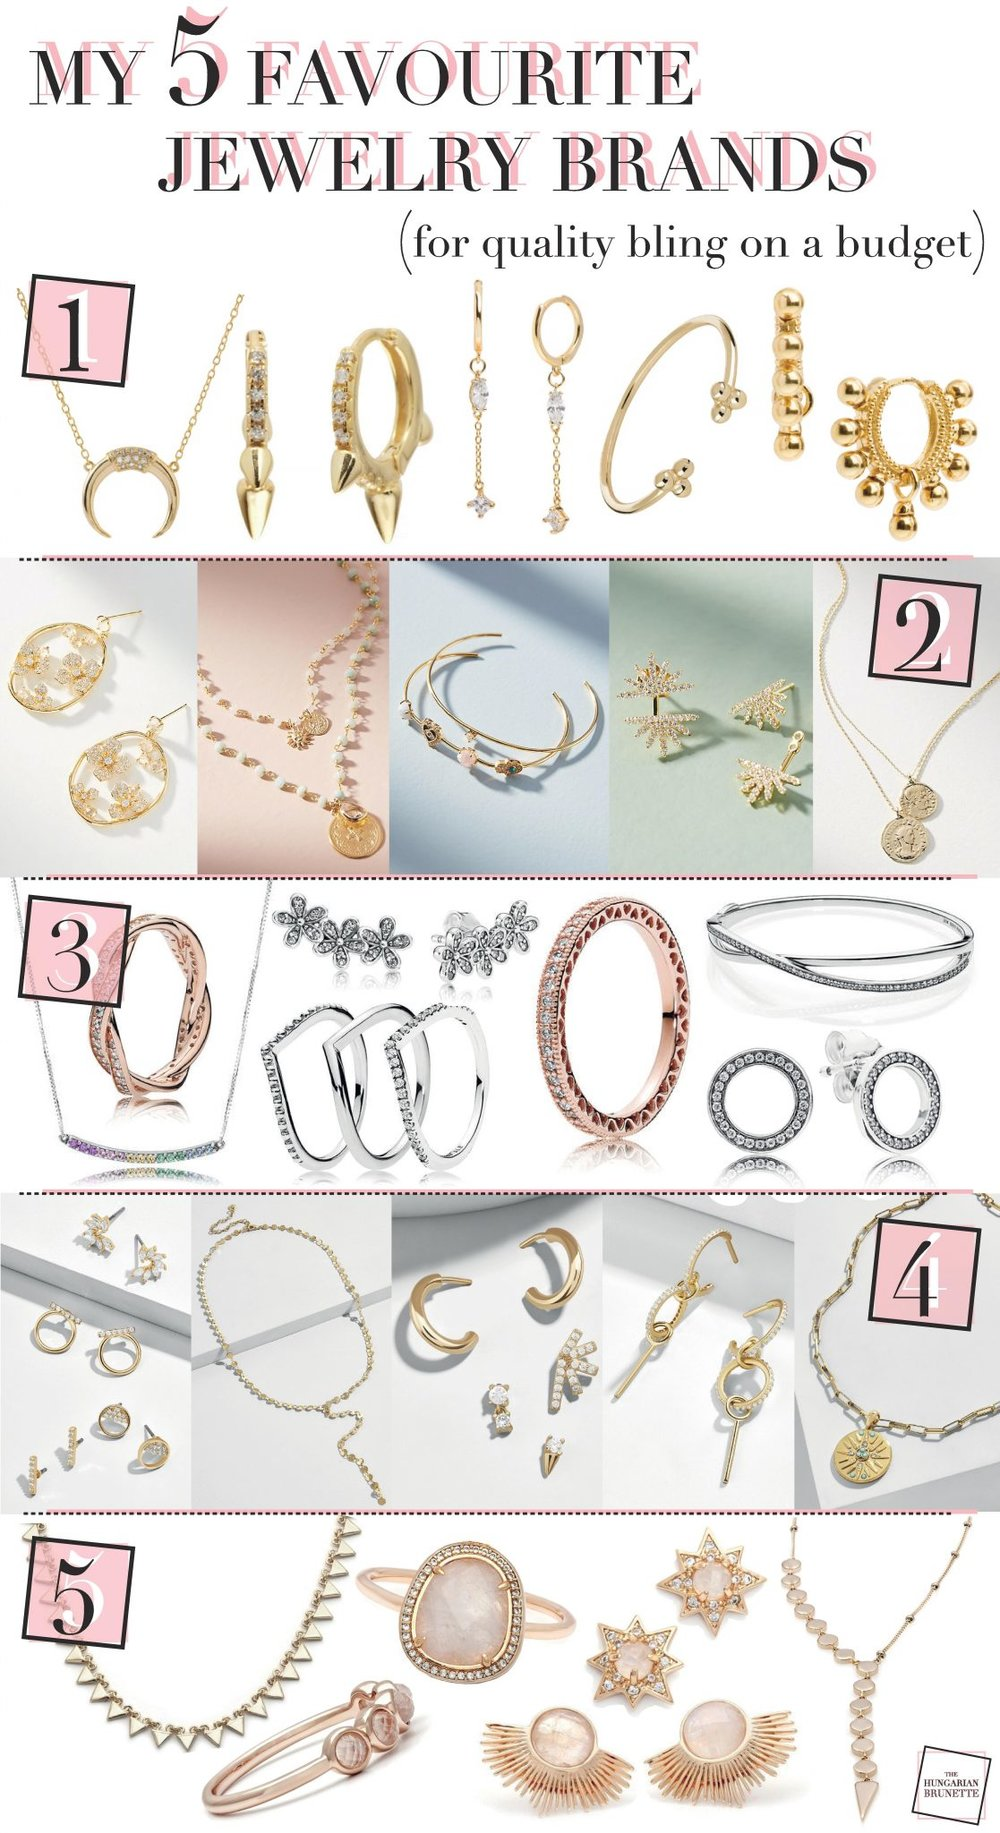 The-Hungarian-Brunette-my-5-favourite-jewelry-brands-for-quality-bling-on-a-budget.jpg